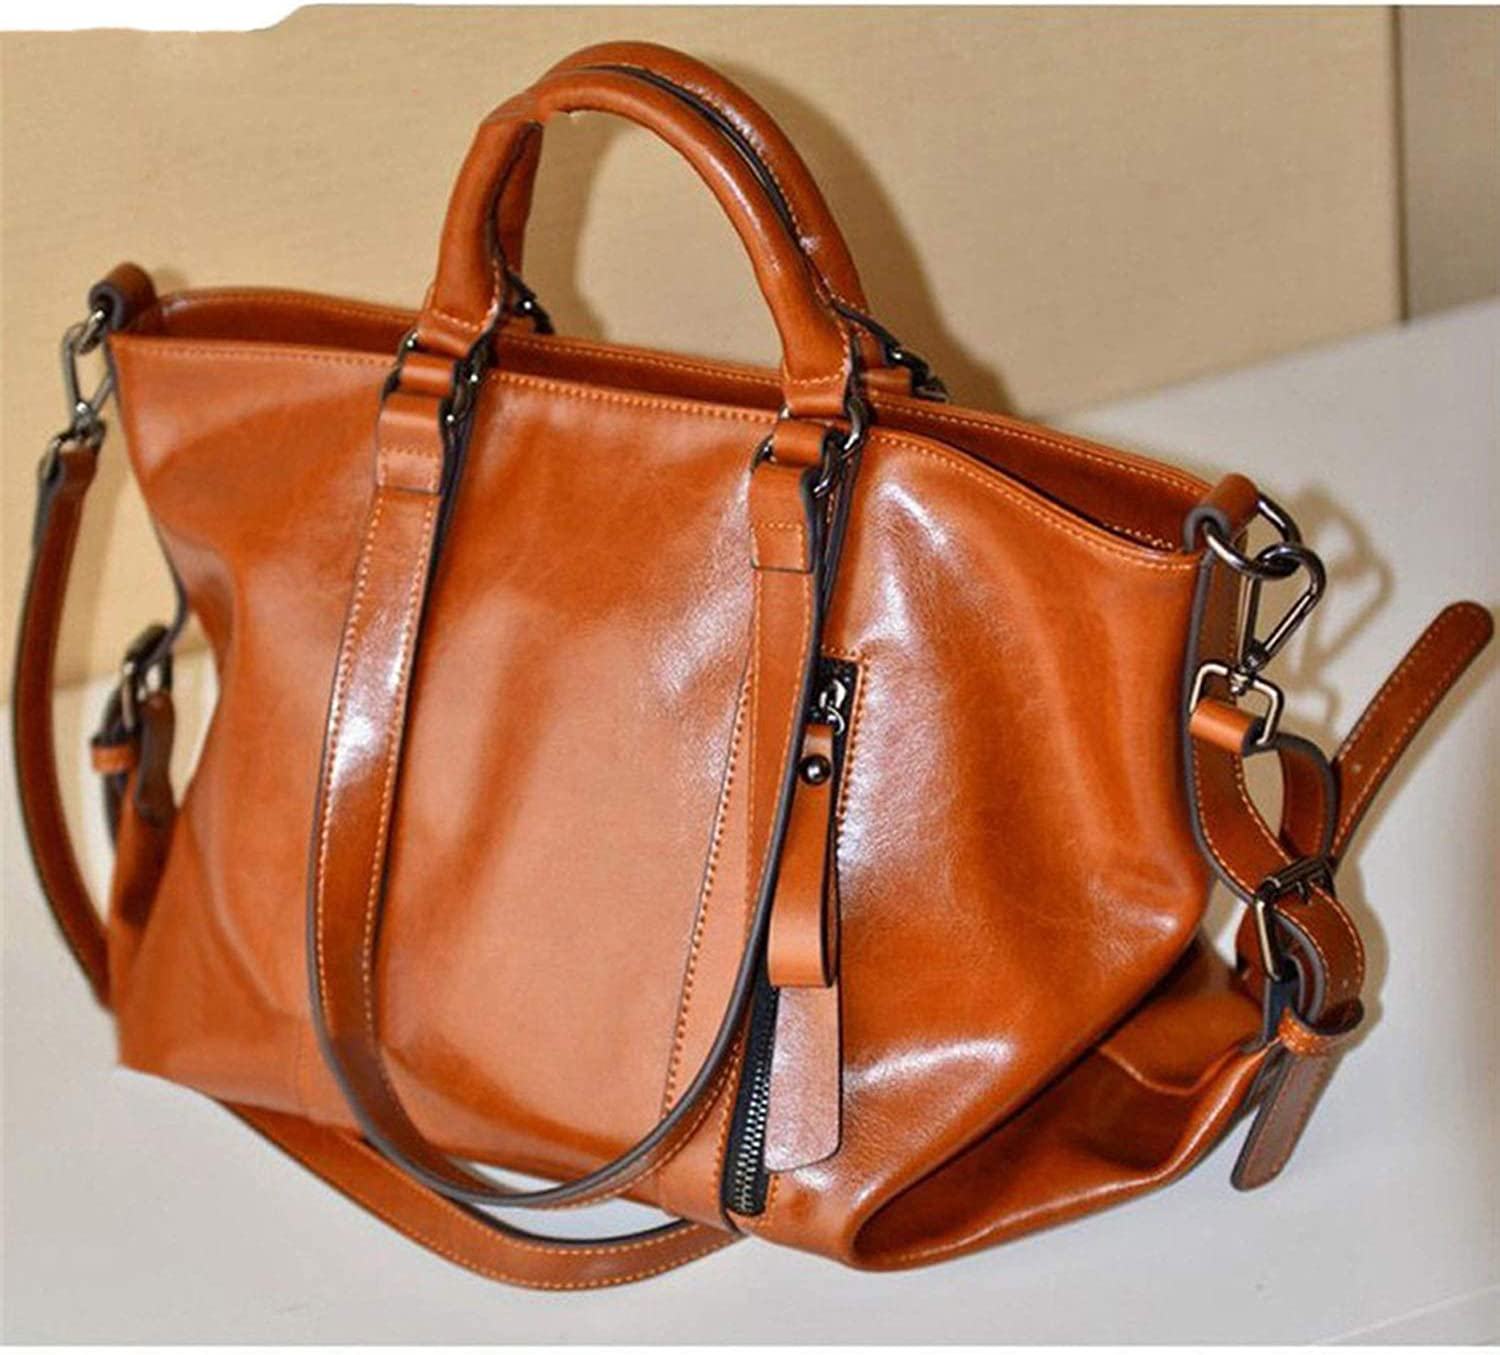 Peony red bolsas mujer pouch Womens Envelope Satchel Cross Body Shoulder Bags Vintage Handbags New Casual #30 Gift